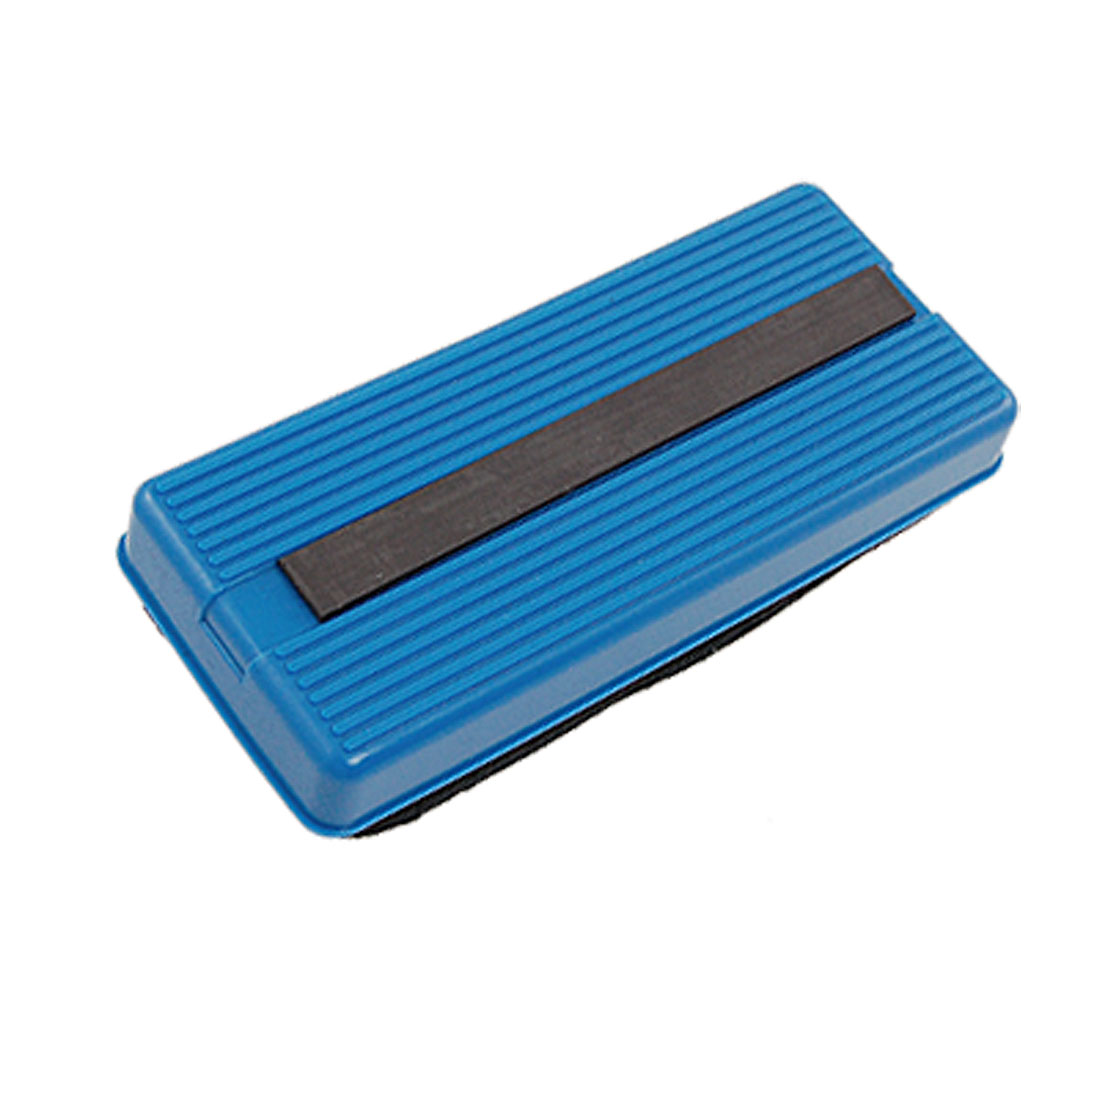 Plastic Frame Fabric Rectangle Grip Blackboard Chalkboard Eraser Blue